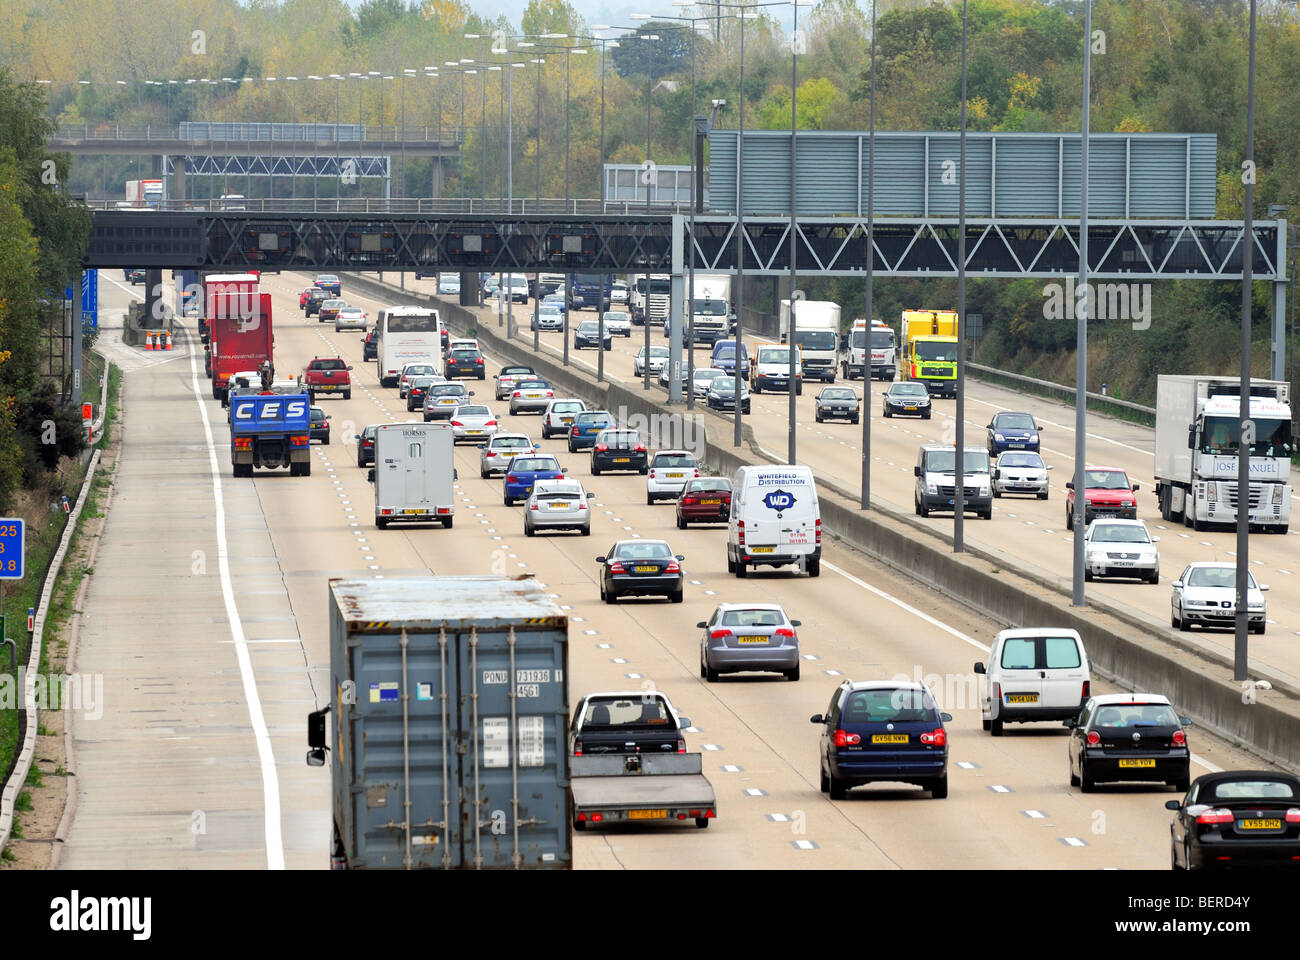 M25 motorway with heavy traffic - Stock Image